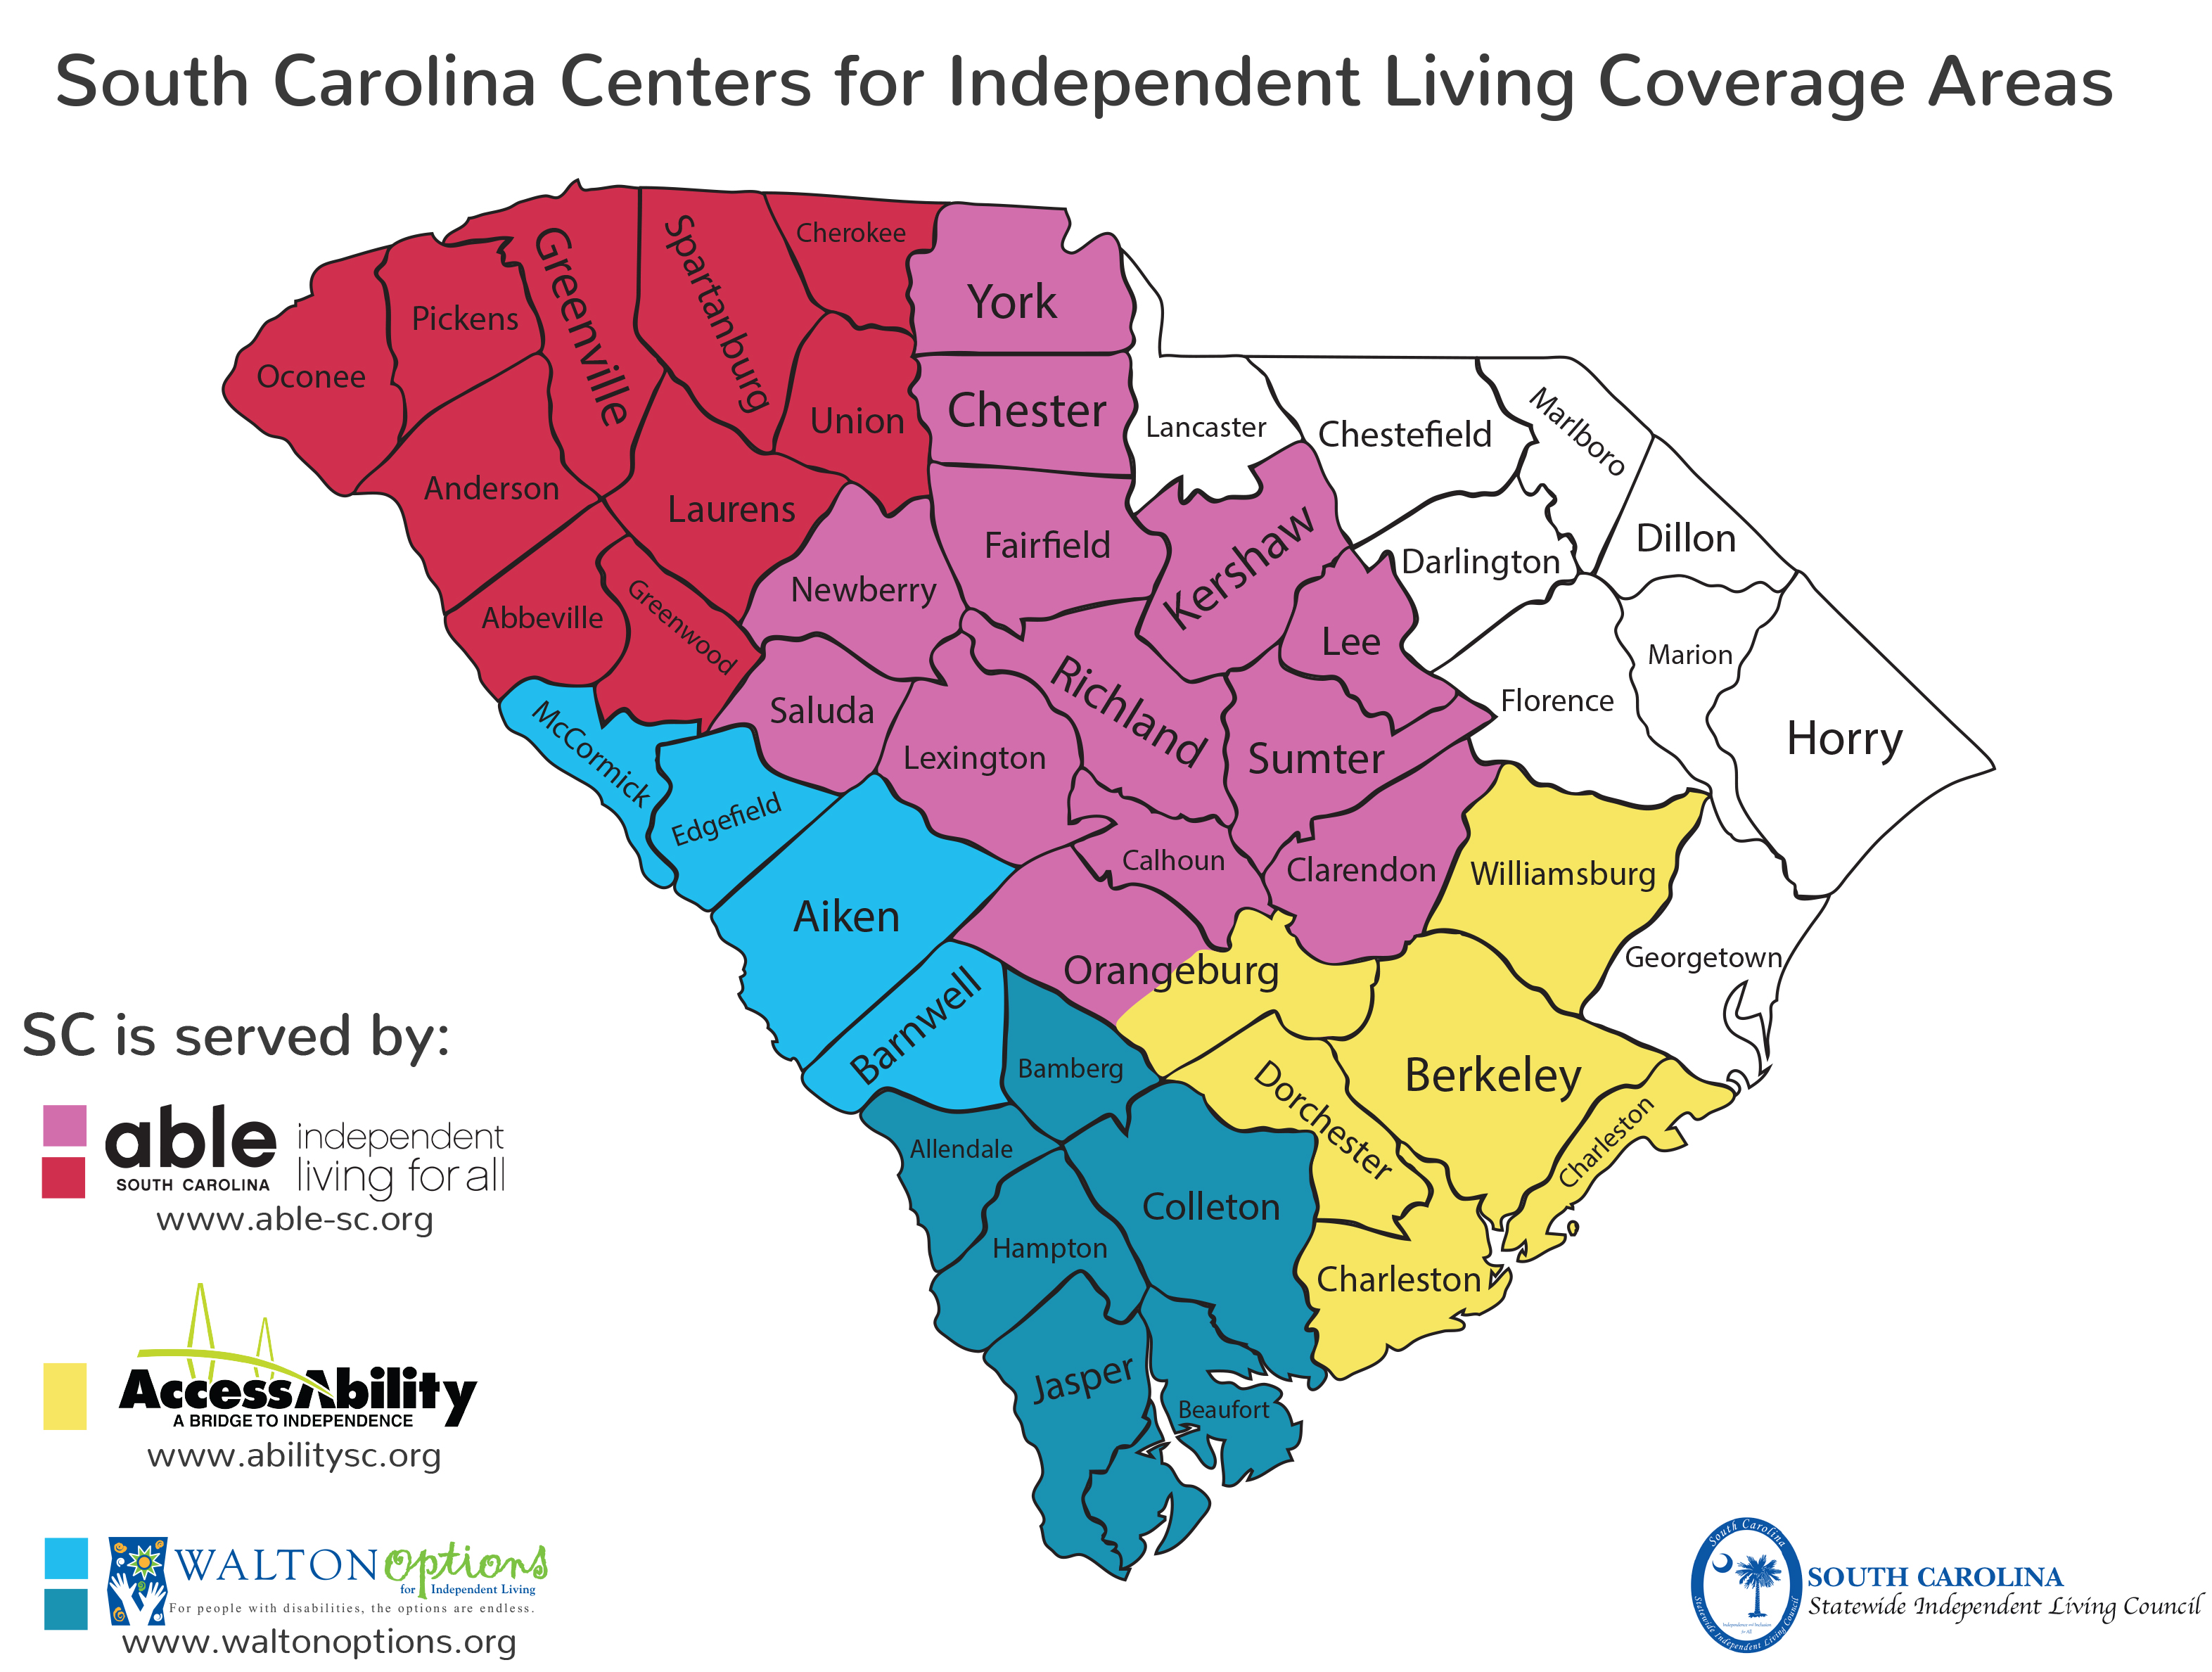 SC Coverage Map that shows Able SC serves: Orangeburg, Clarendon, Calhoun, Sumter, Richland, Lexington, Lee, Kershaw, Fairfield, Newberry, Saluda, Greenwood, Abbeville, Laurens, Anderson, Oconee, Pickens, Greenville, Laurens, Spartanburg, Union, Cherokee. AcccessAbility serves: Charleston, Dorchester, Orangeburg, Berkeley, Williamsburg. Walton Options Serves: Beaufort, Jasper, Colleton, Hampton, Bamberg, Allendale, Barnwell, Aiken, Edgefield, McCormick